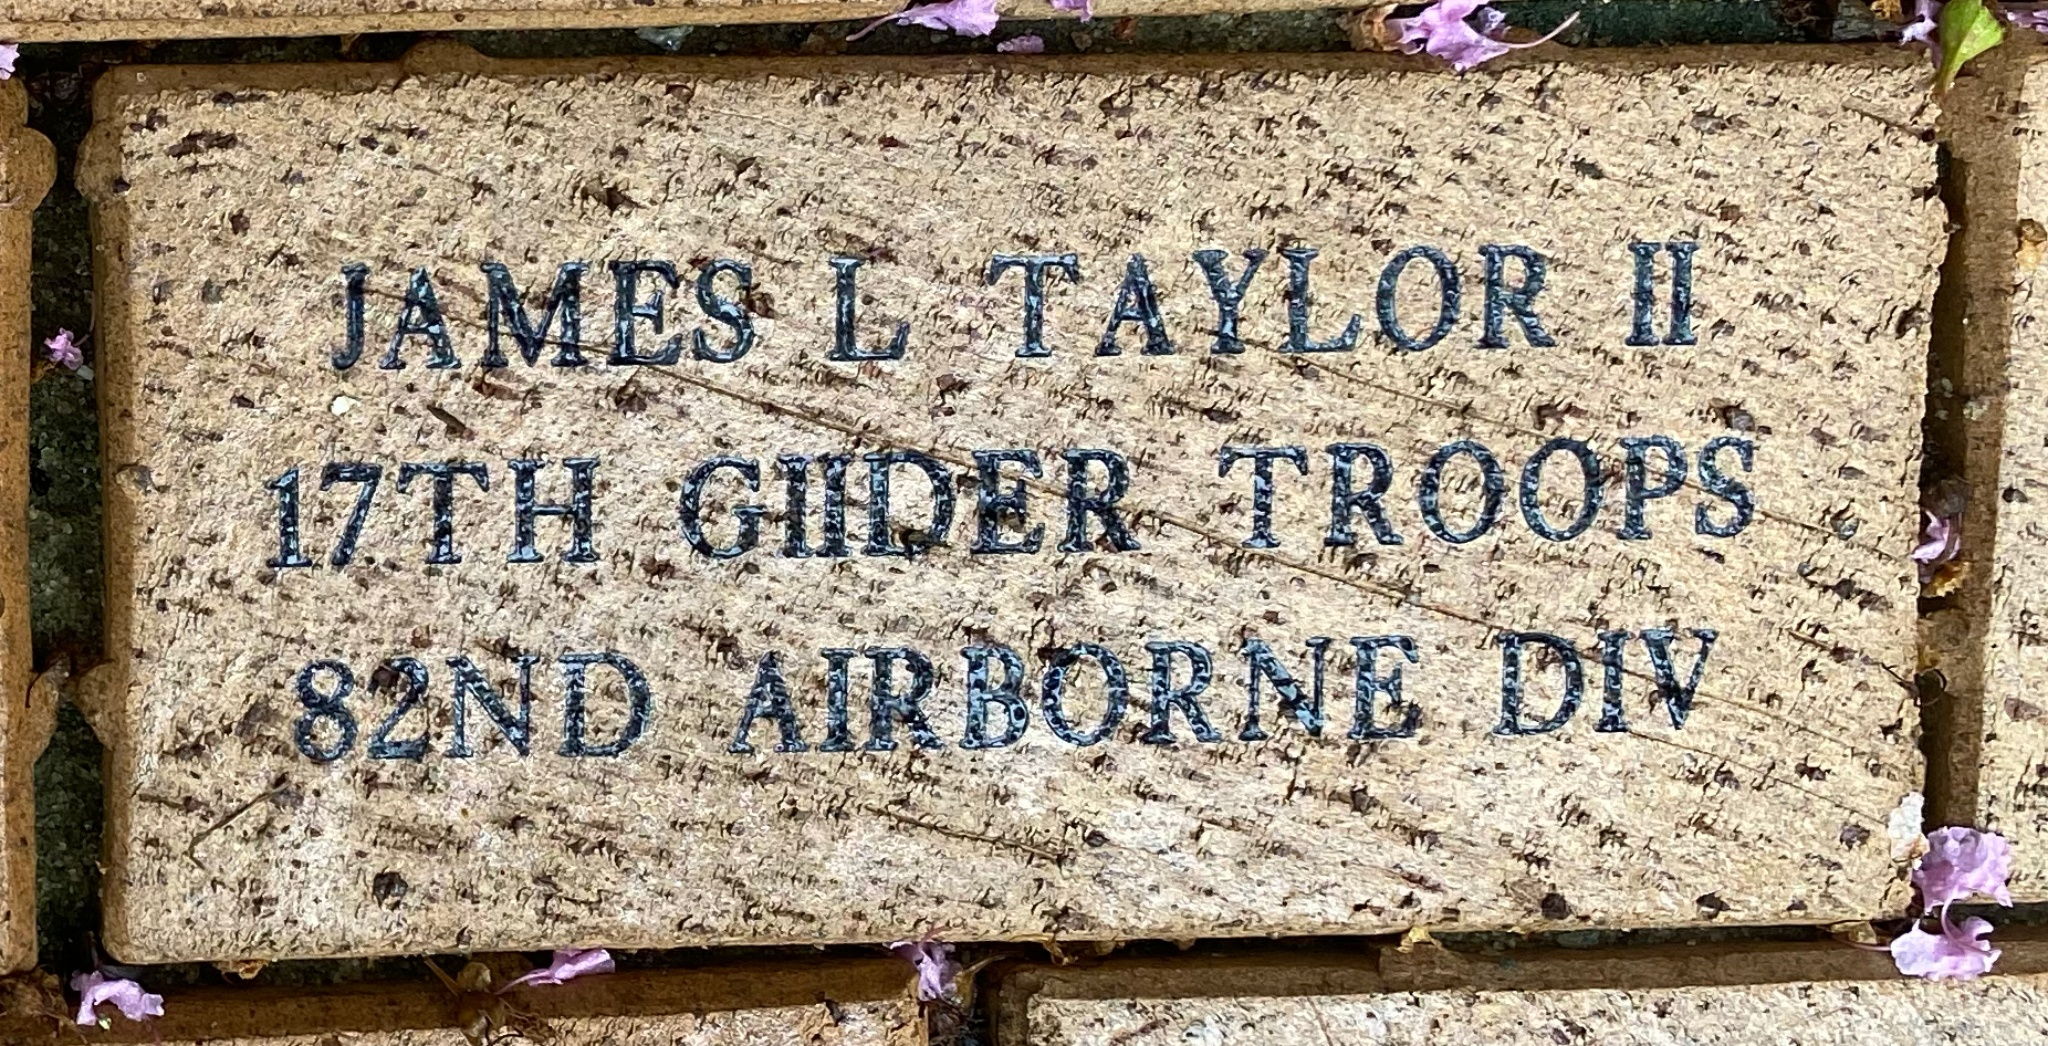 JAMES L TAYLOR II 17 GLIDER TROOPS 82ND AIRBORNE DIV